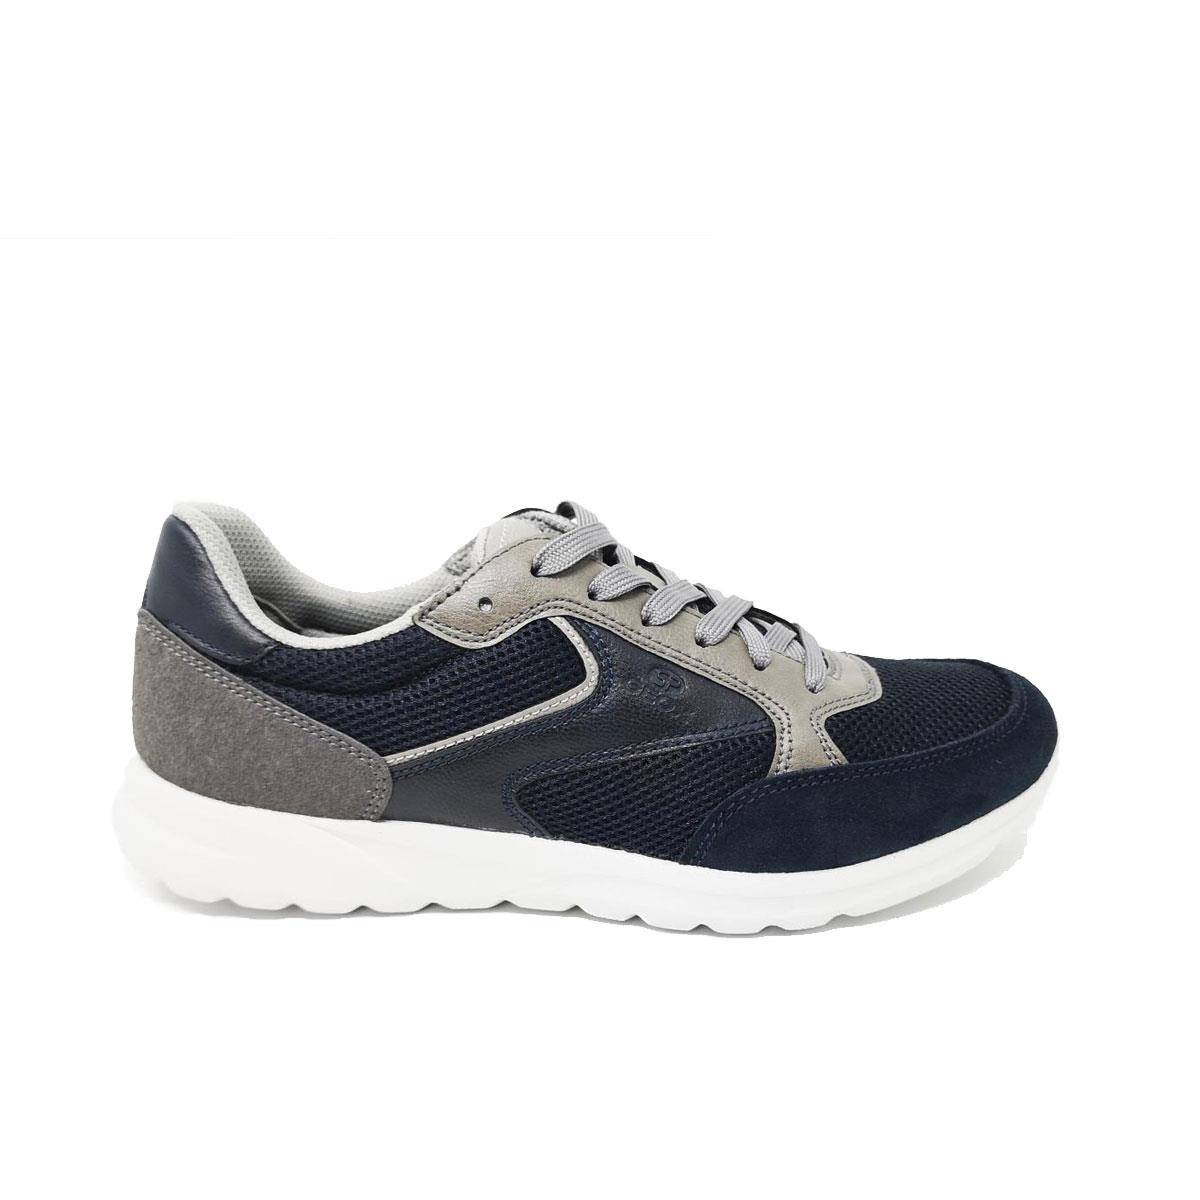 Geox Scarpa Uomo In Tela Navy/anthracite Navy